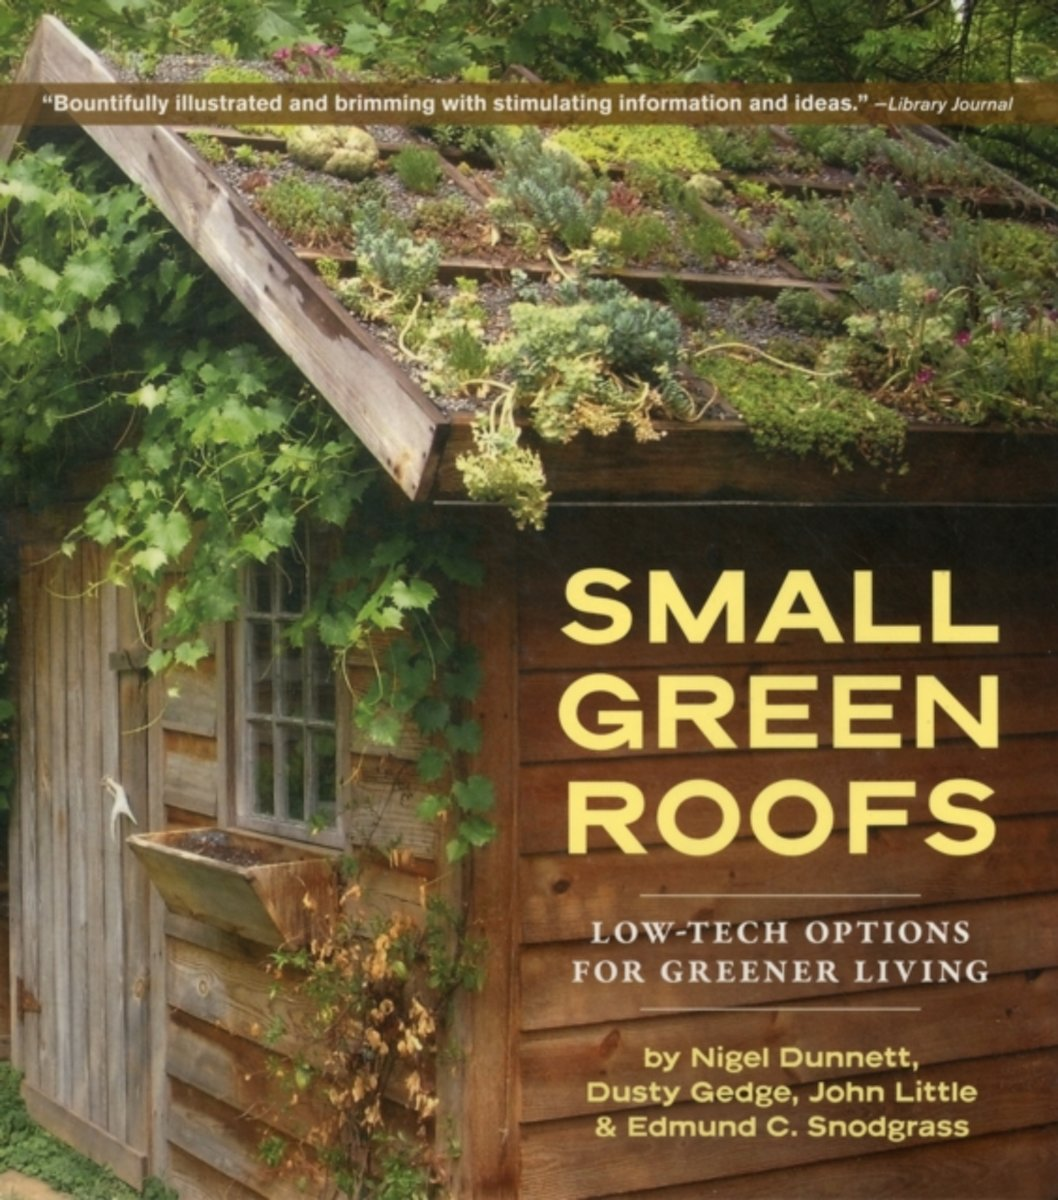 Small Green Roofs Low-Tech Options for Greener Living